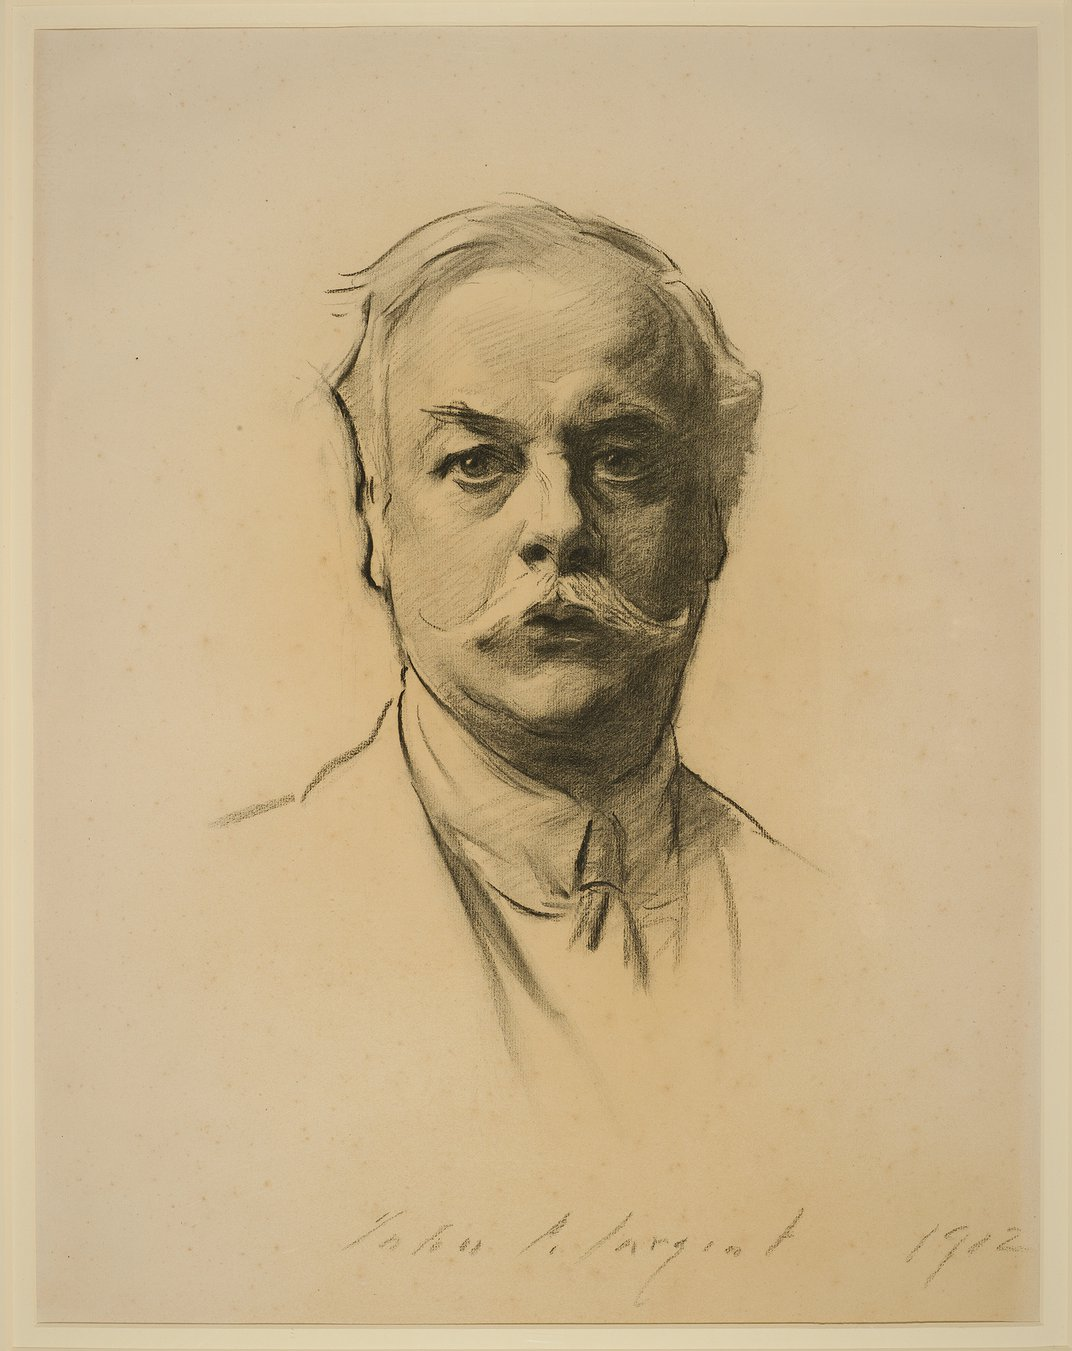 John Singer Sargent 'Abhorred' Making His Lavish Portraits, So He Took Up Charcoal to Get the Job Done